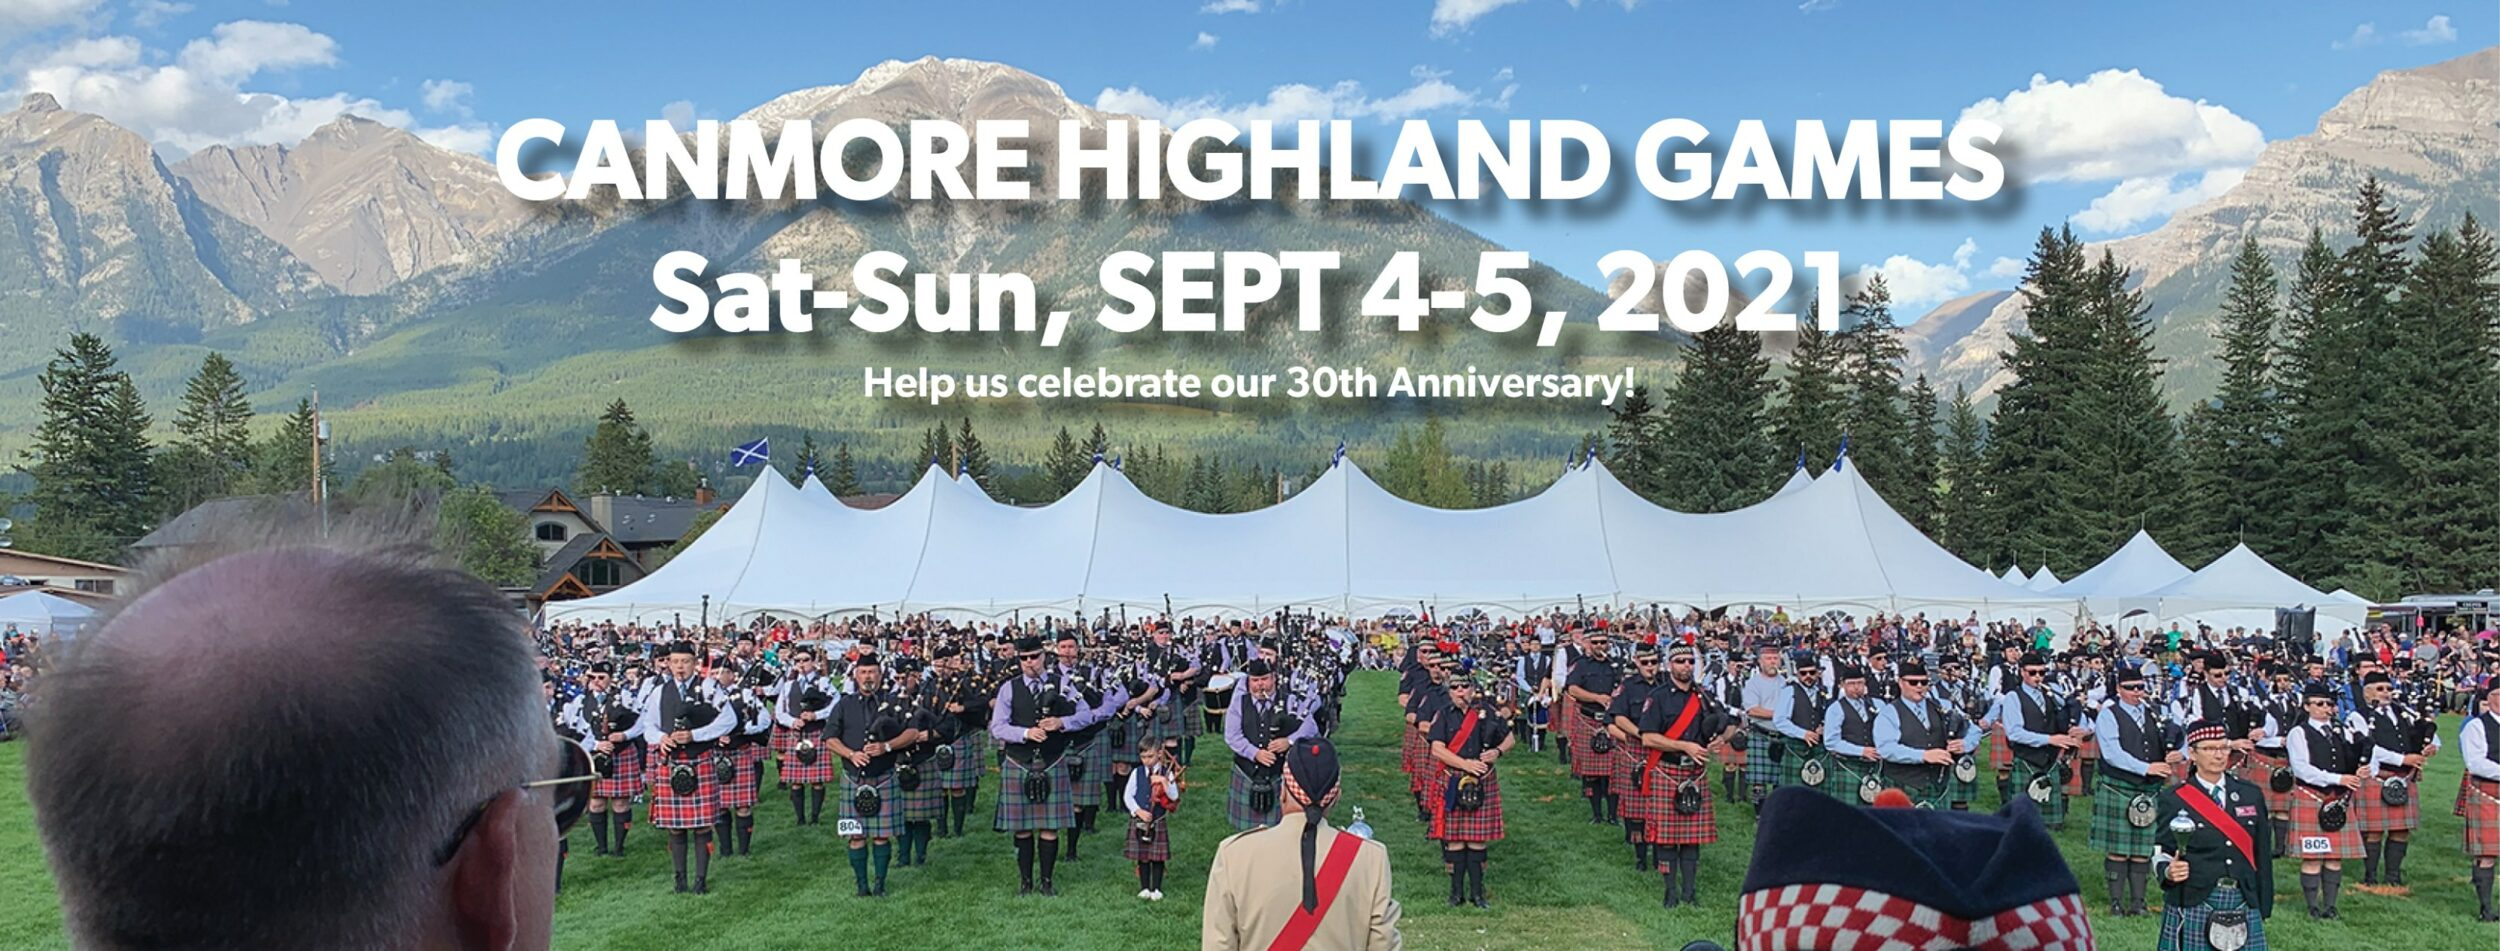 Canmore Highland Games 30th Annual Festival on Where Rockies